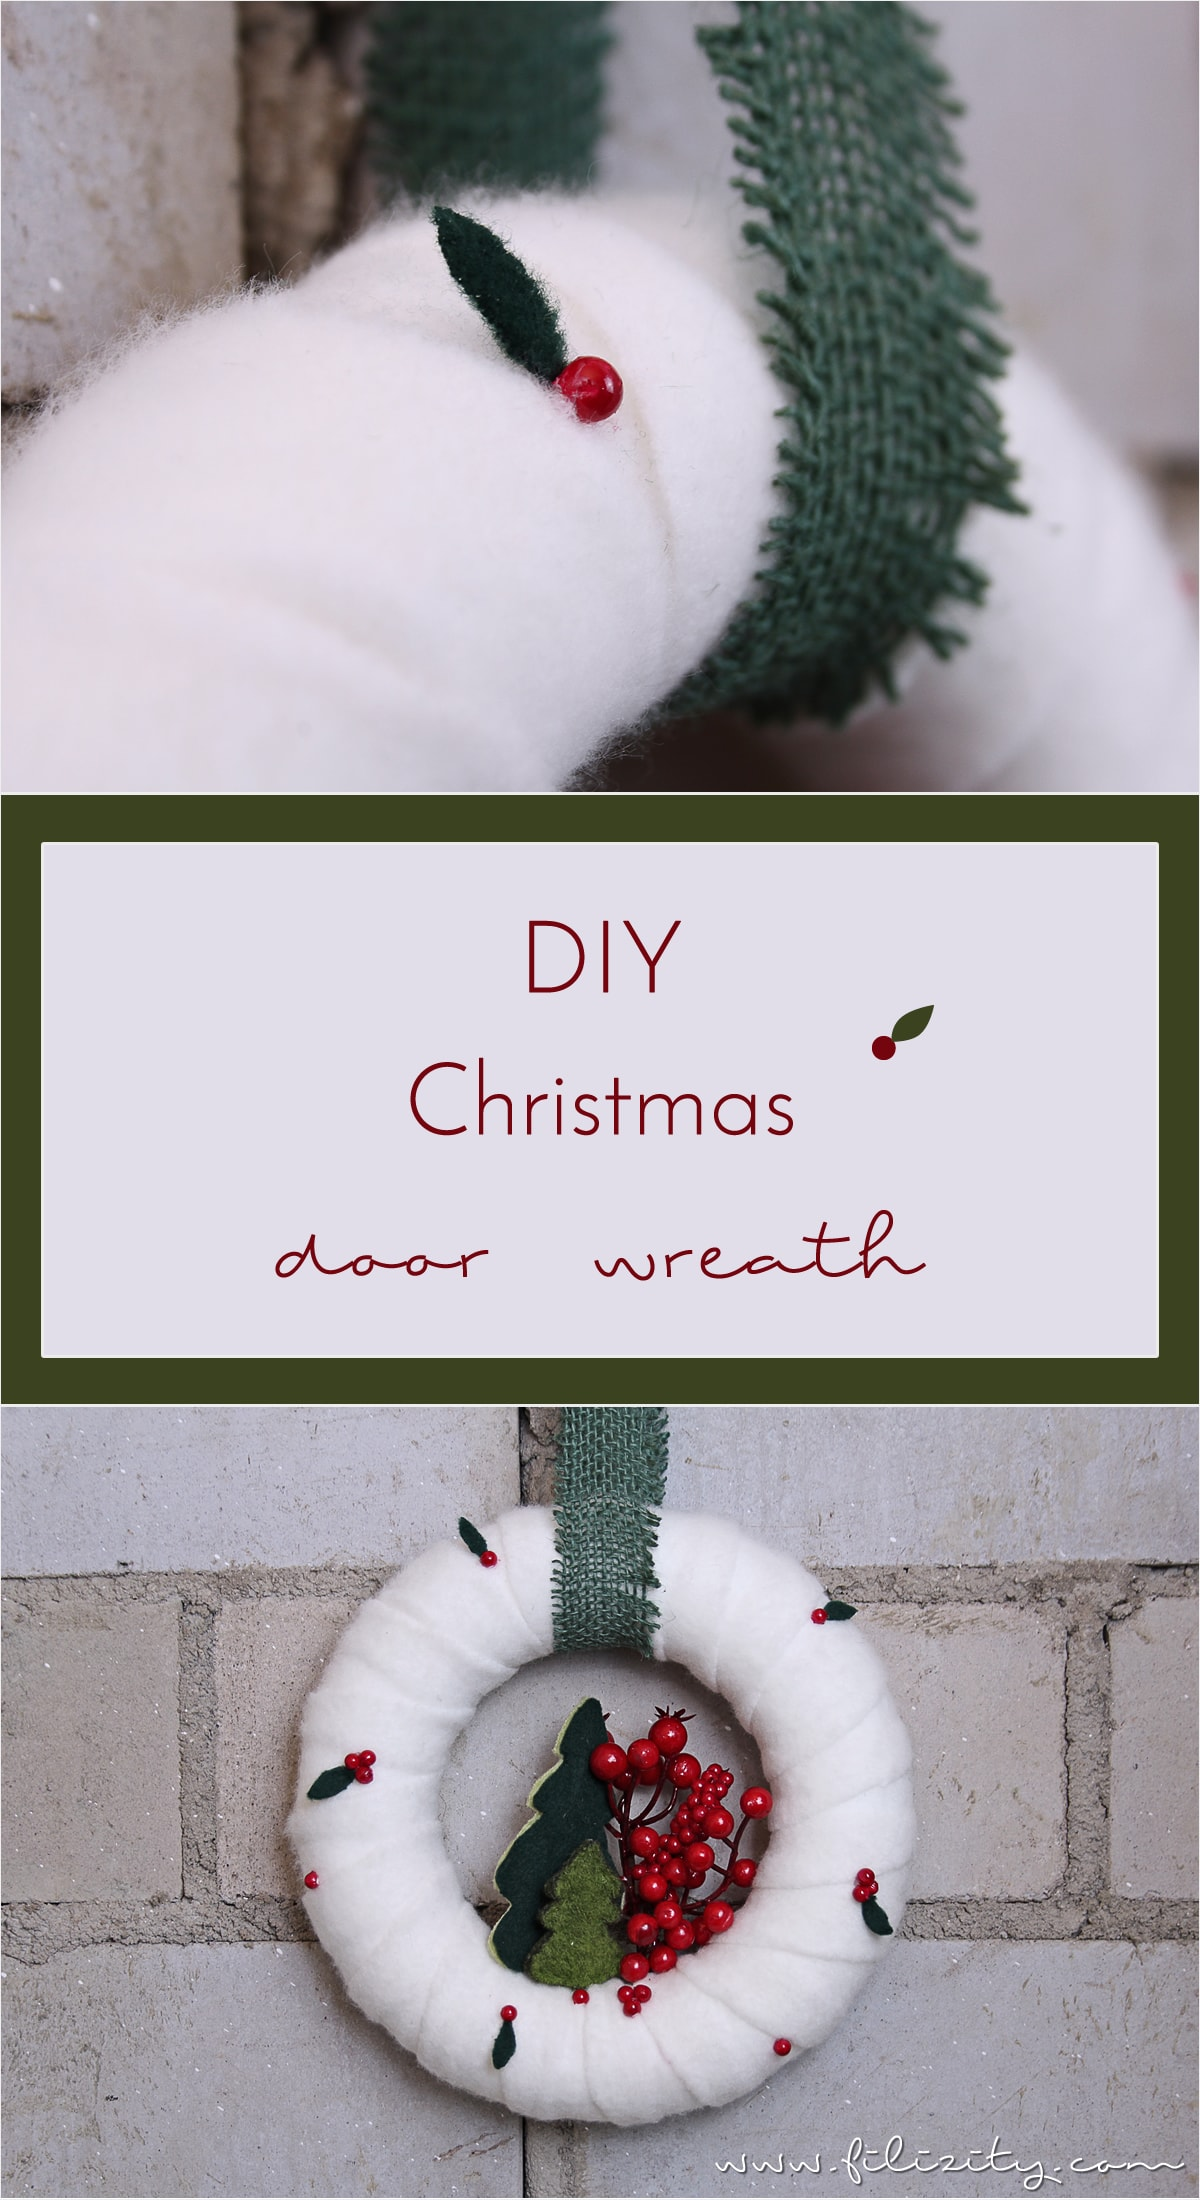 DIY Christmas wreath with berries